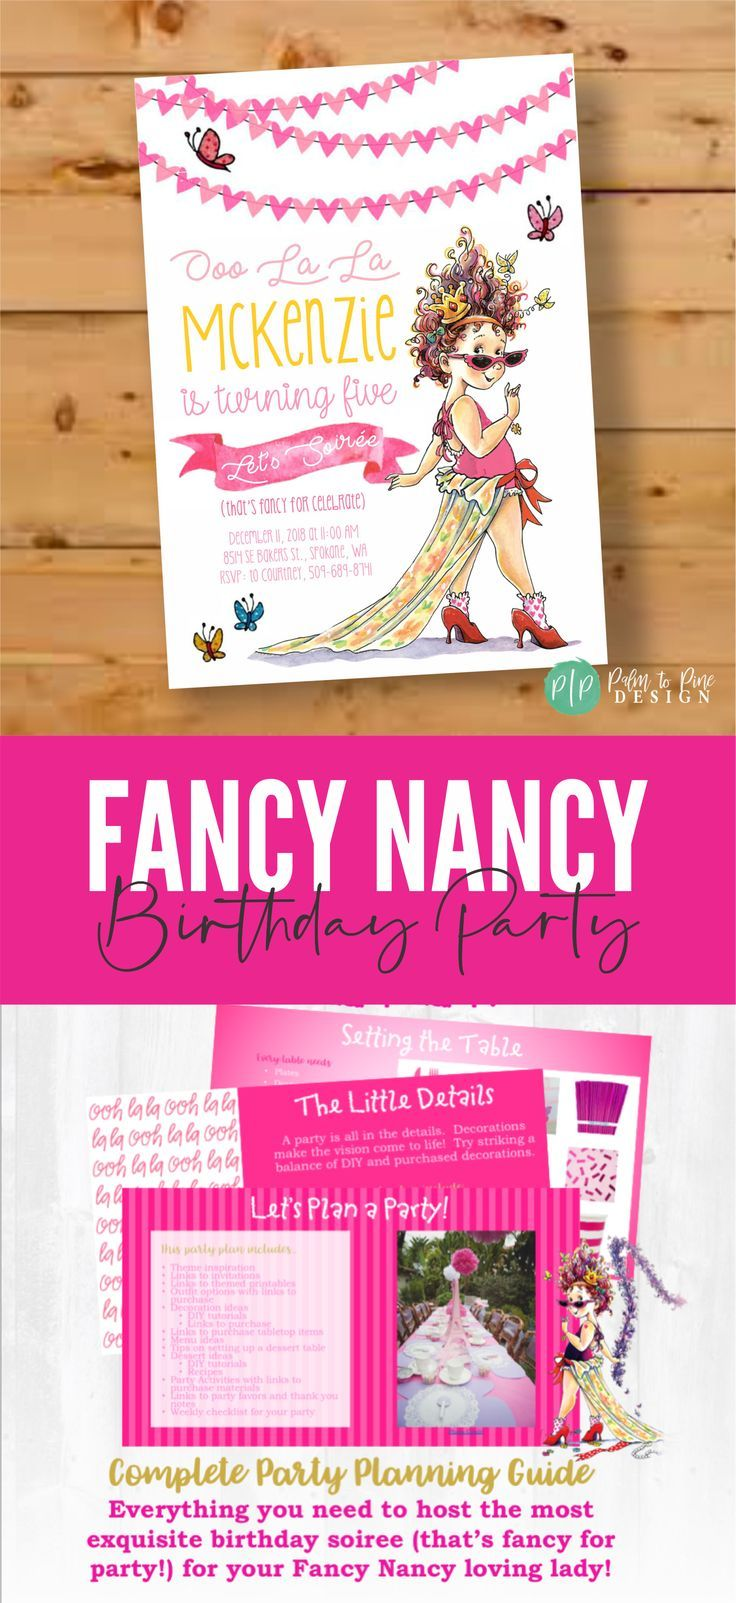 medium resolution of the cute heart banner butterflies and fancy nancy clipart from the book series is perfect